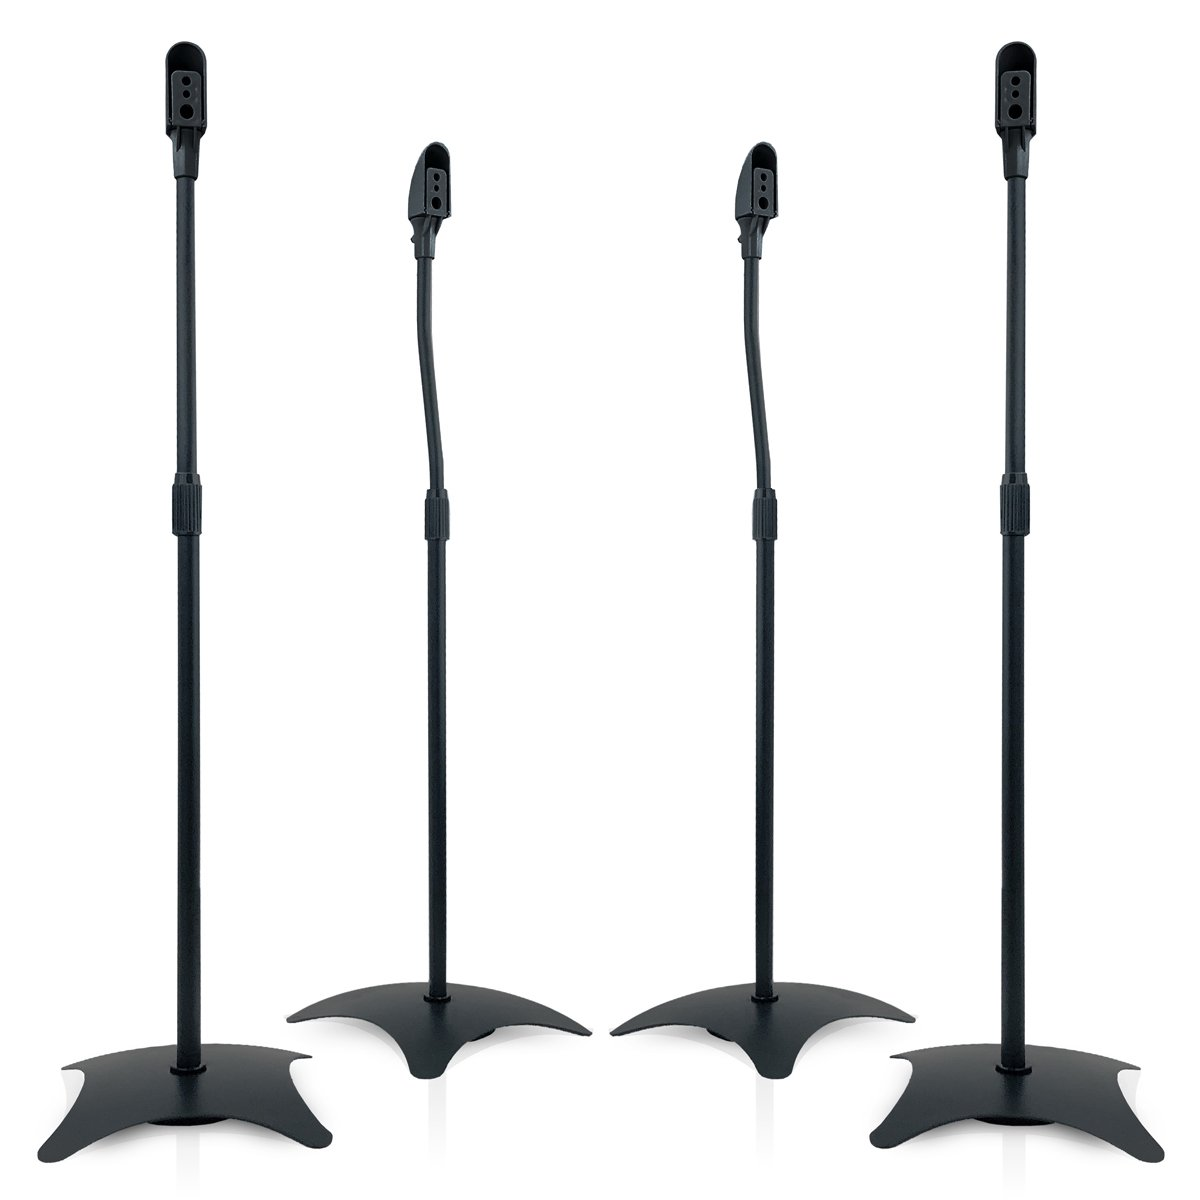 9HORN 5.1 Metal Speaker Stands Kit Height Adjustable (Black, 2 Pairs) by 9HORN